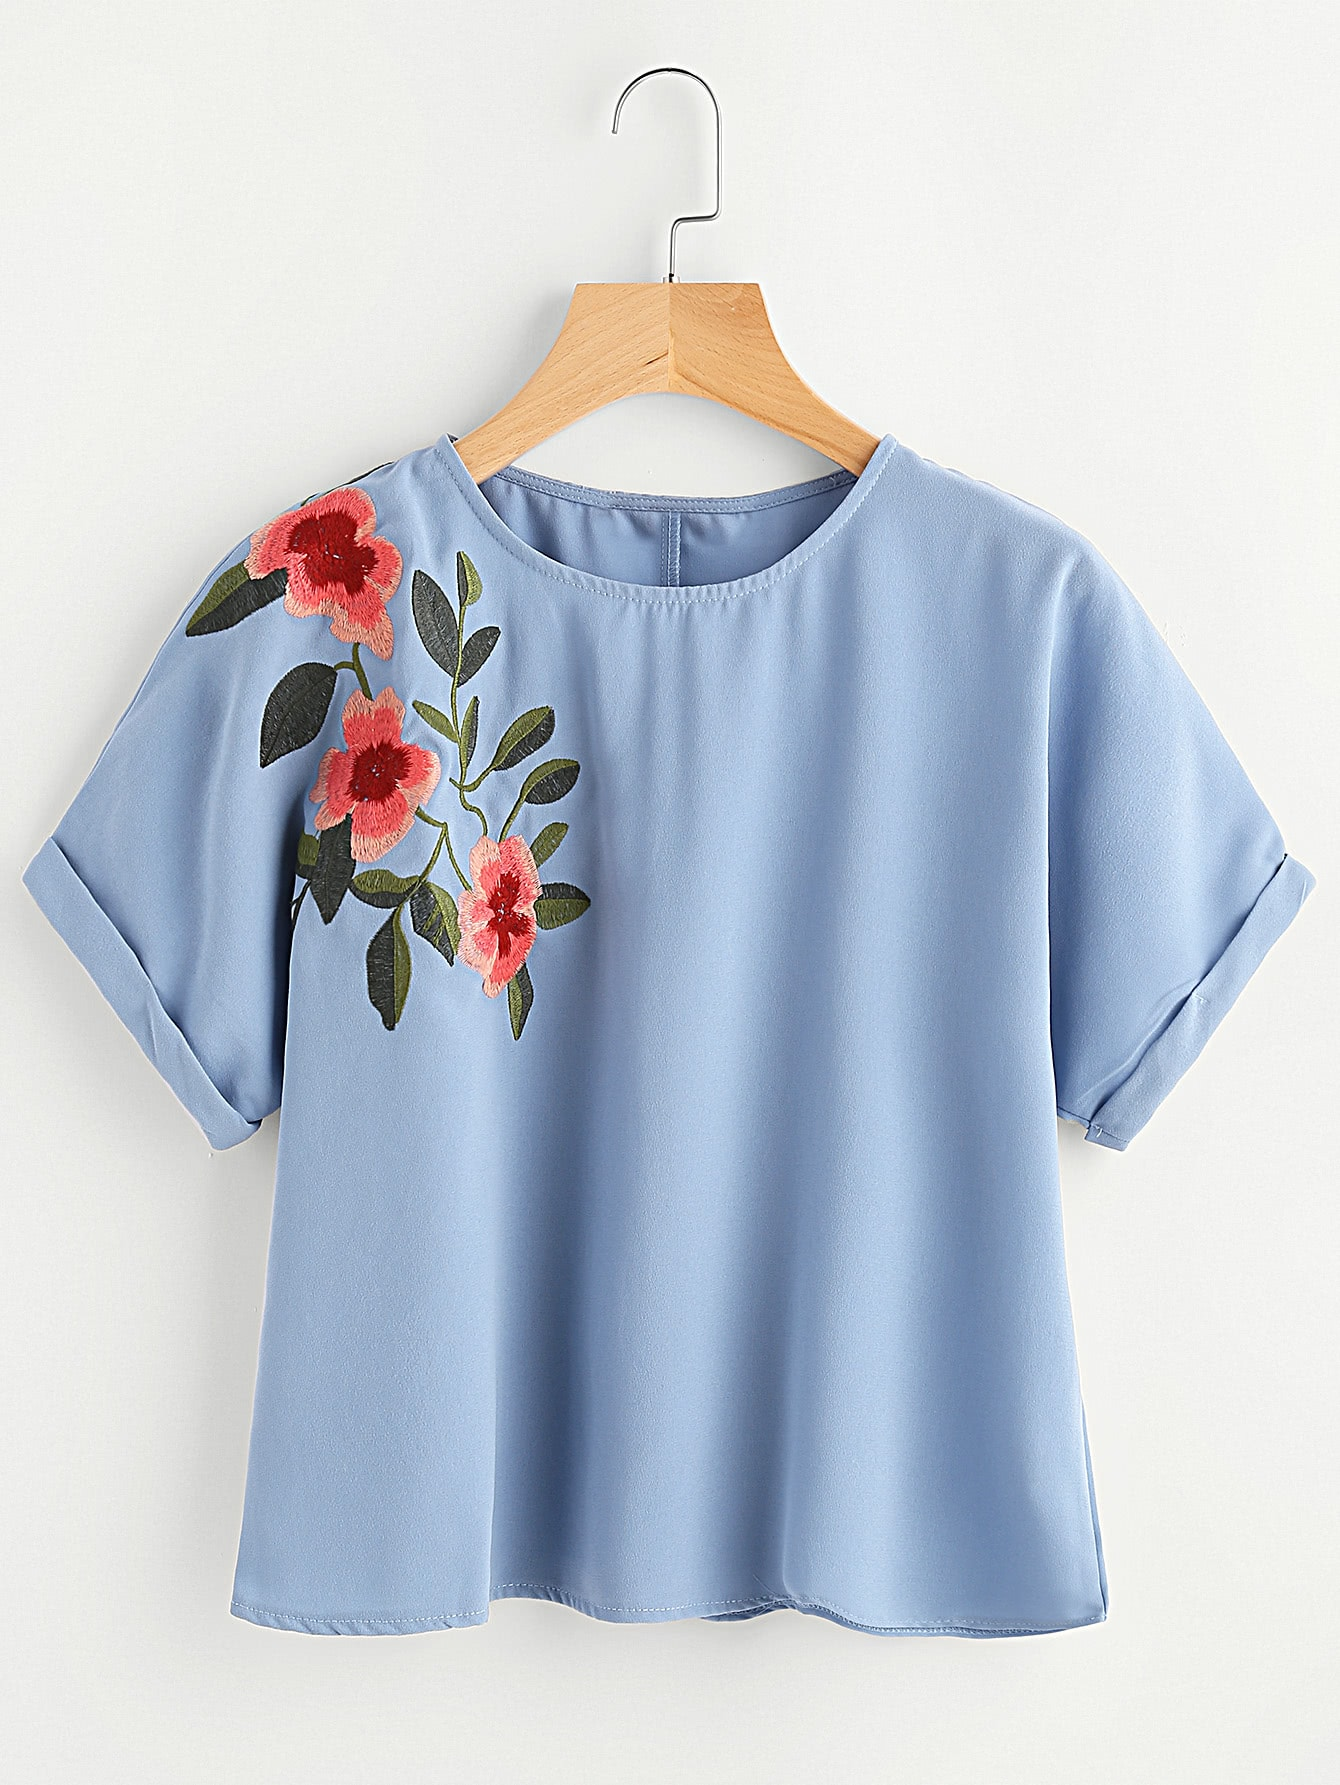 Flower Embroidered Cuffed Sleeve Top blouse170421457